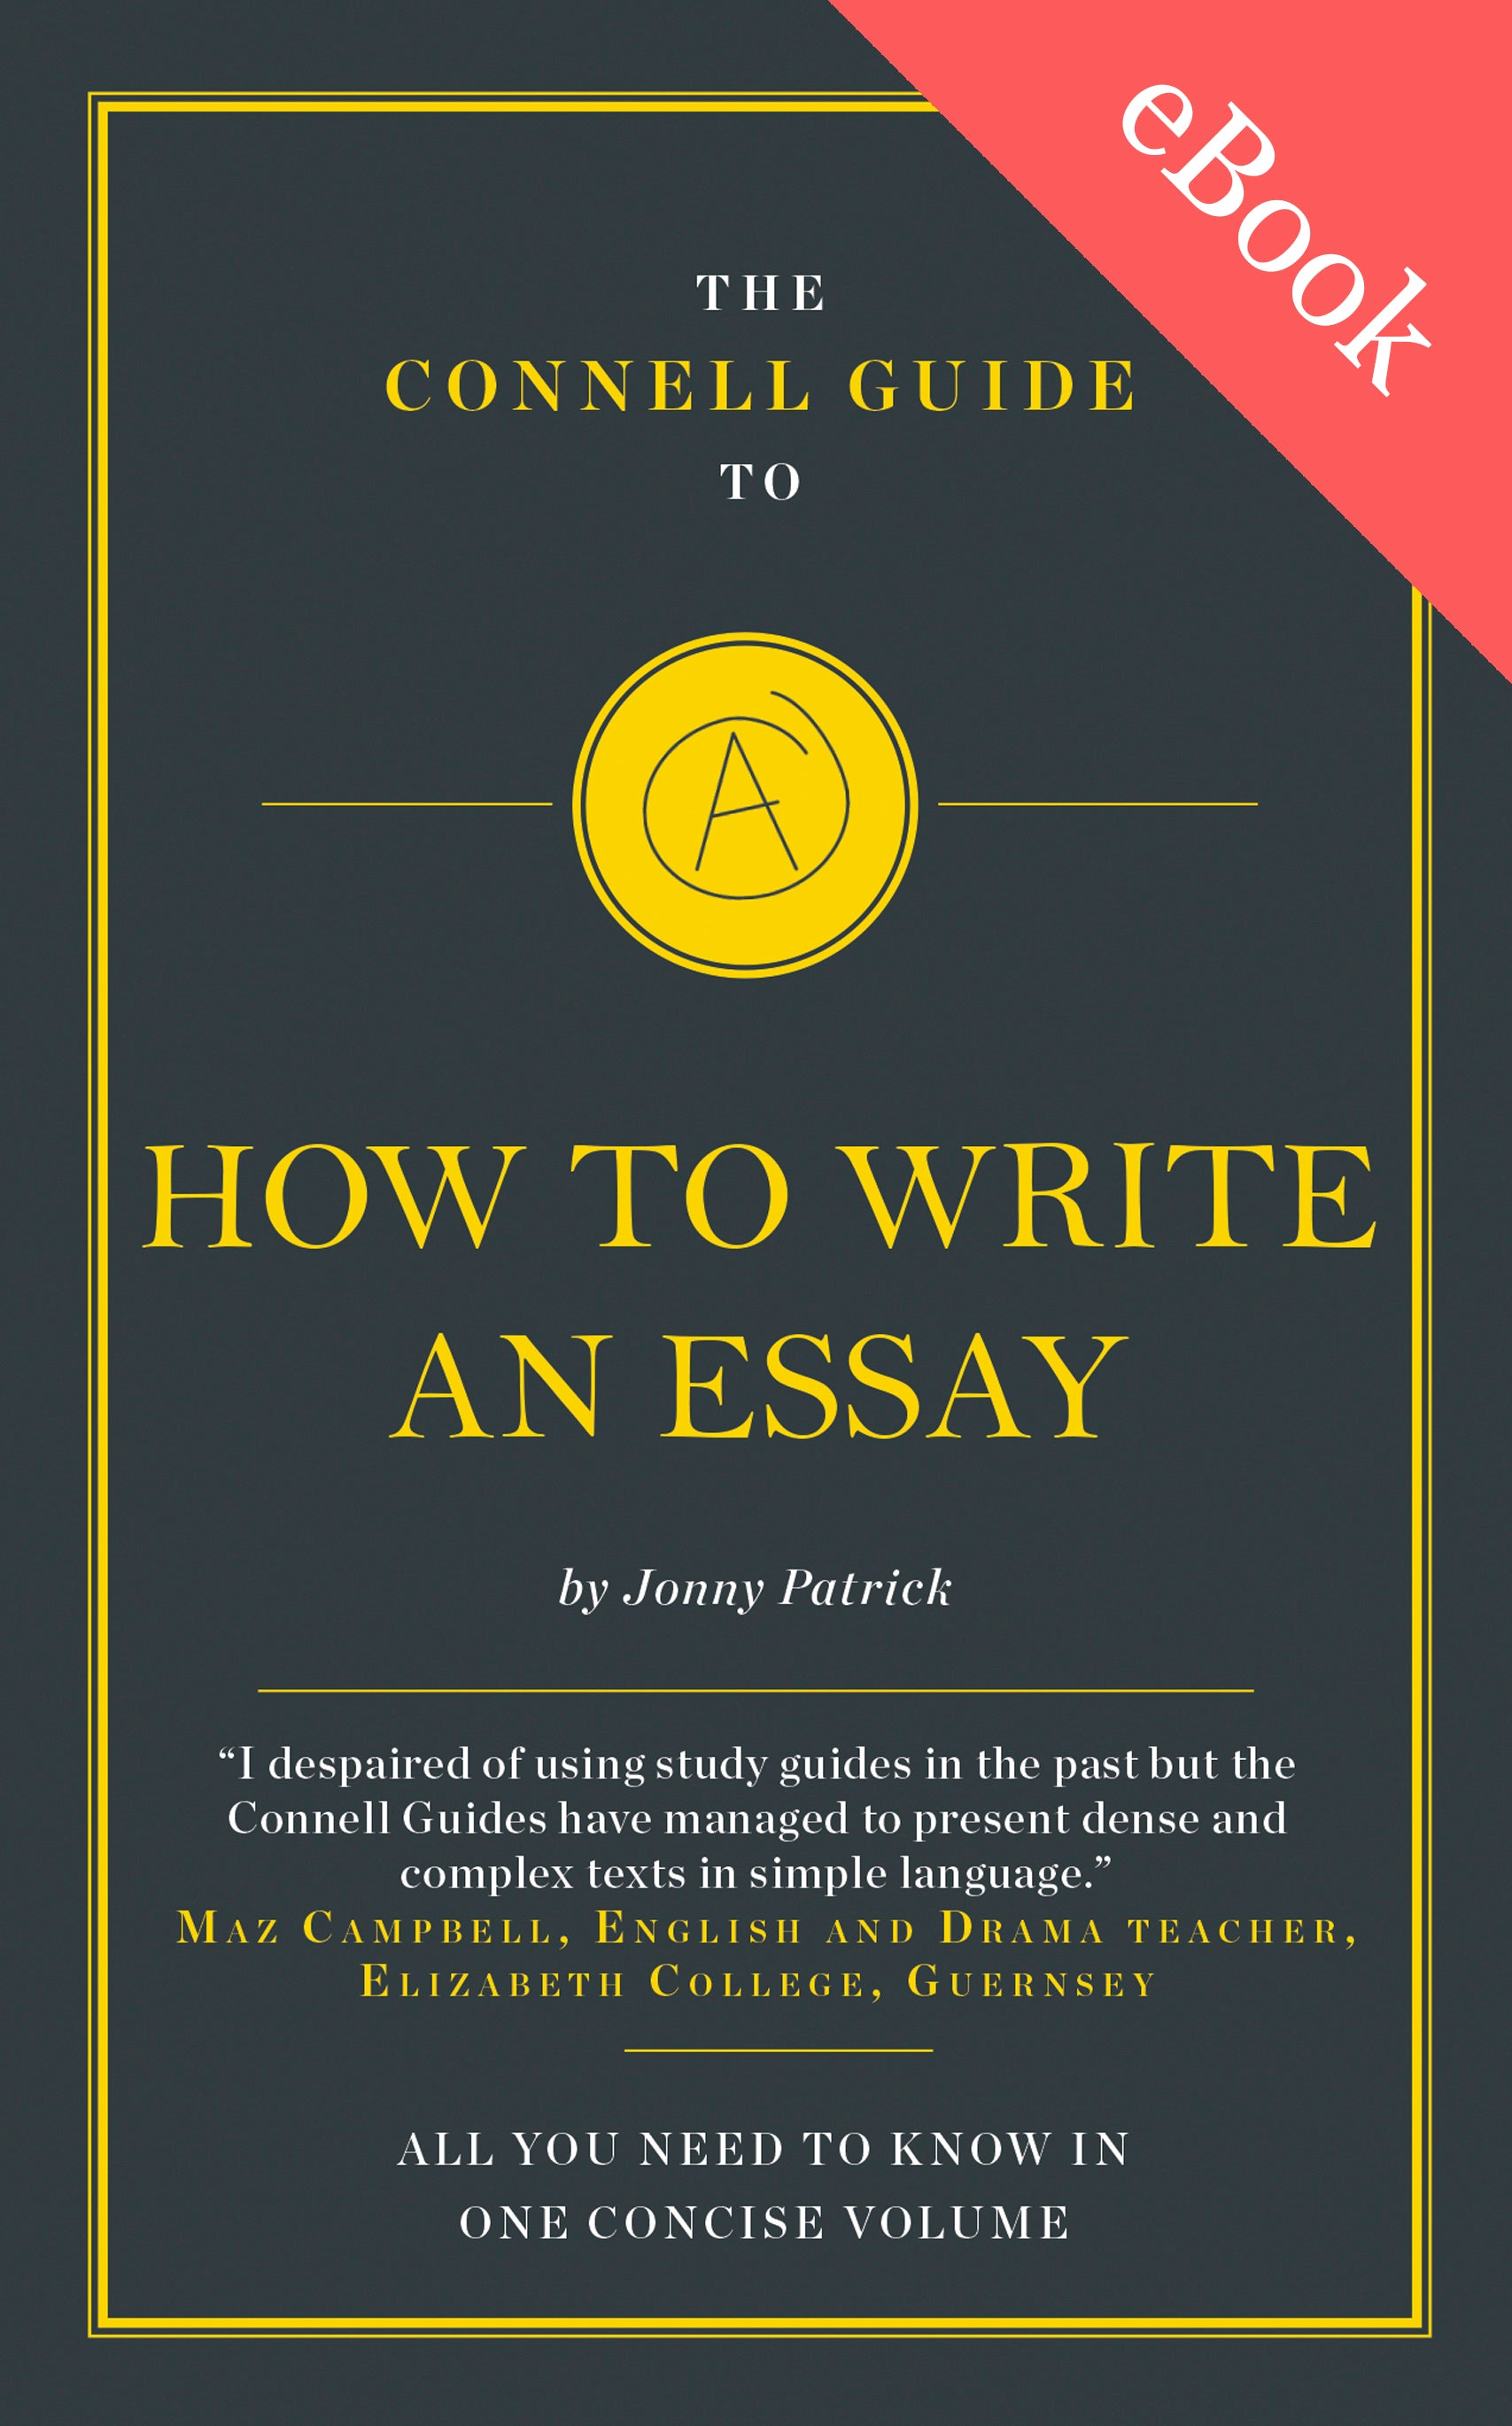 Secrets Your English Teacher Wont Tell You (Tips to Write A Perfect Essay Book 1)